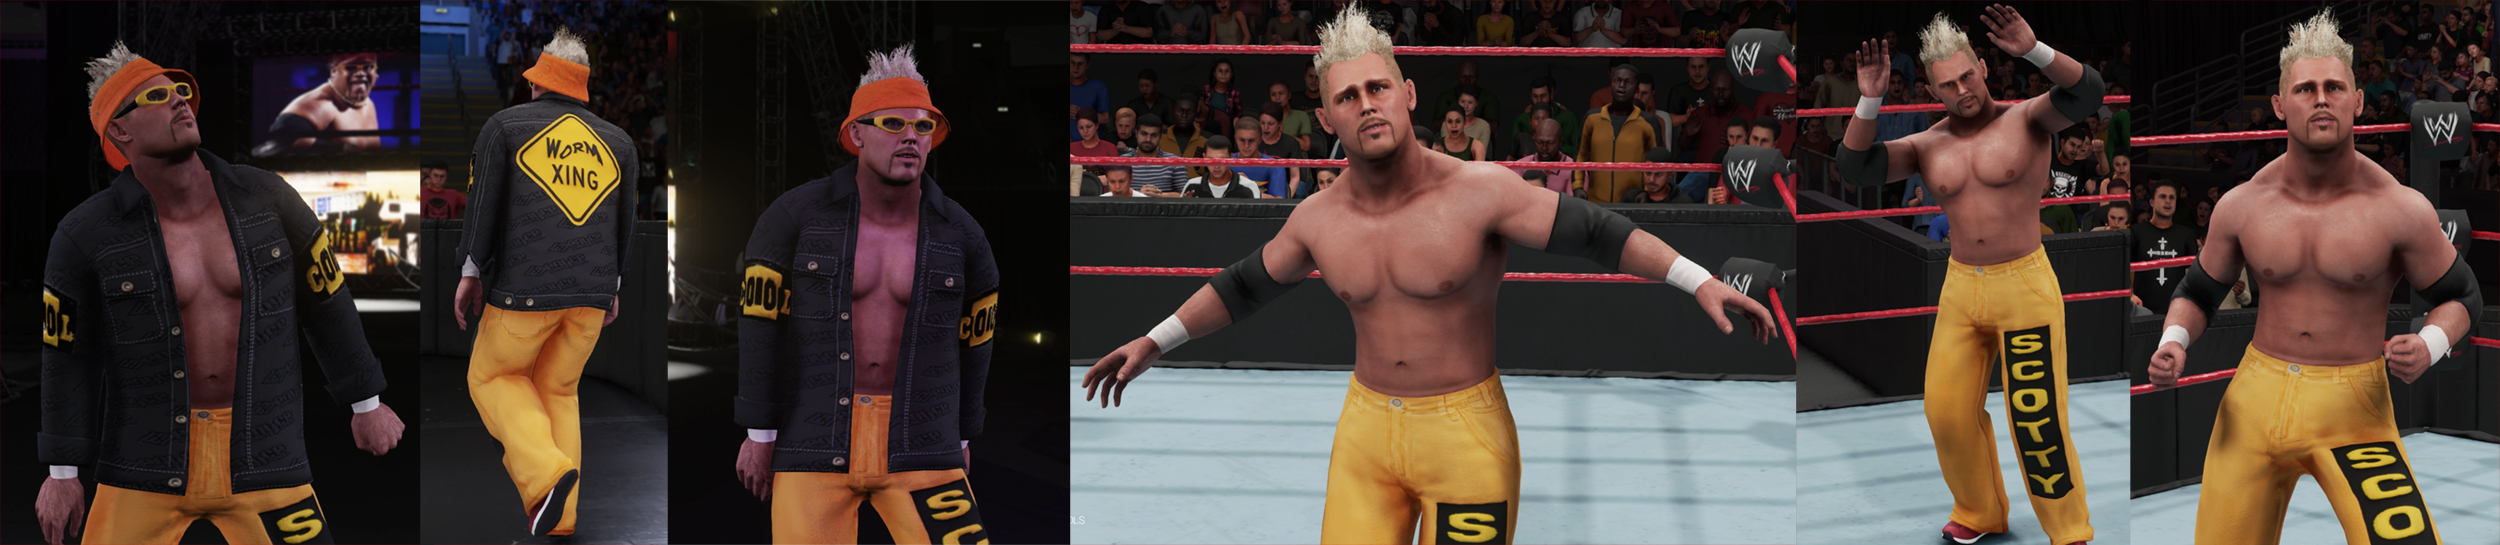 Scotty2Hotty.jpg